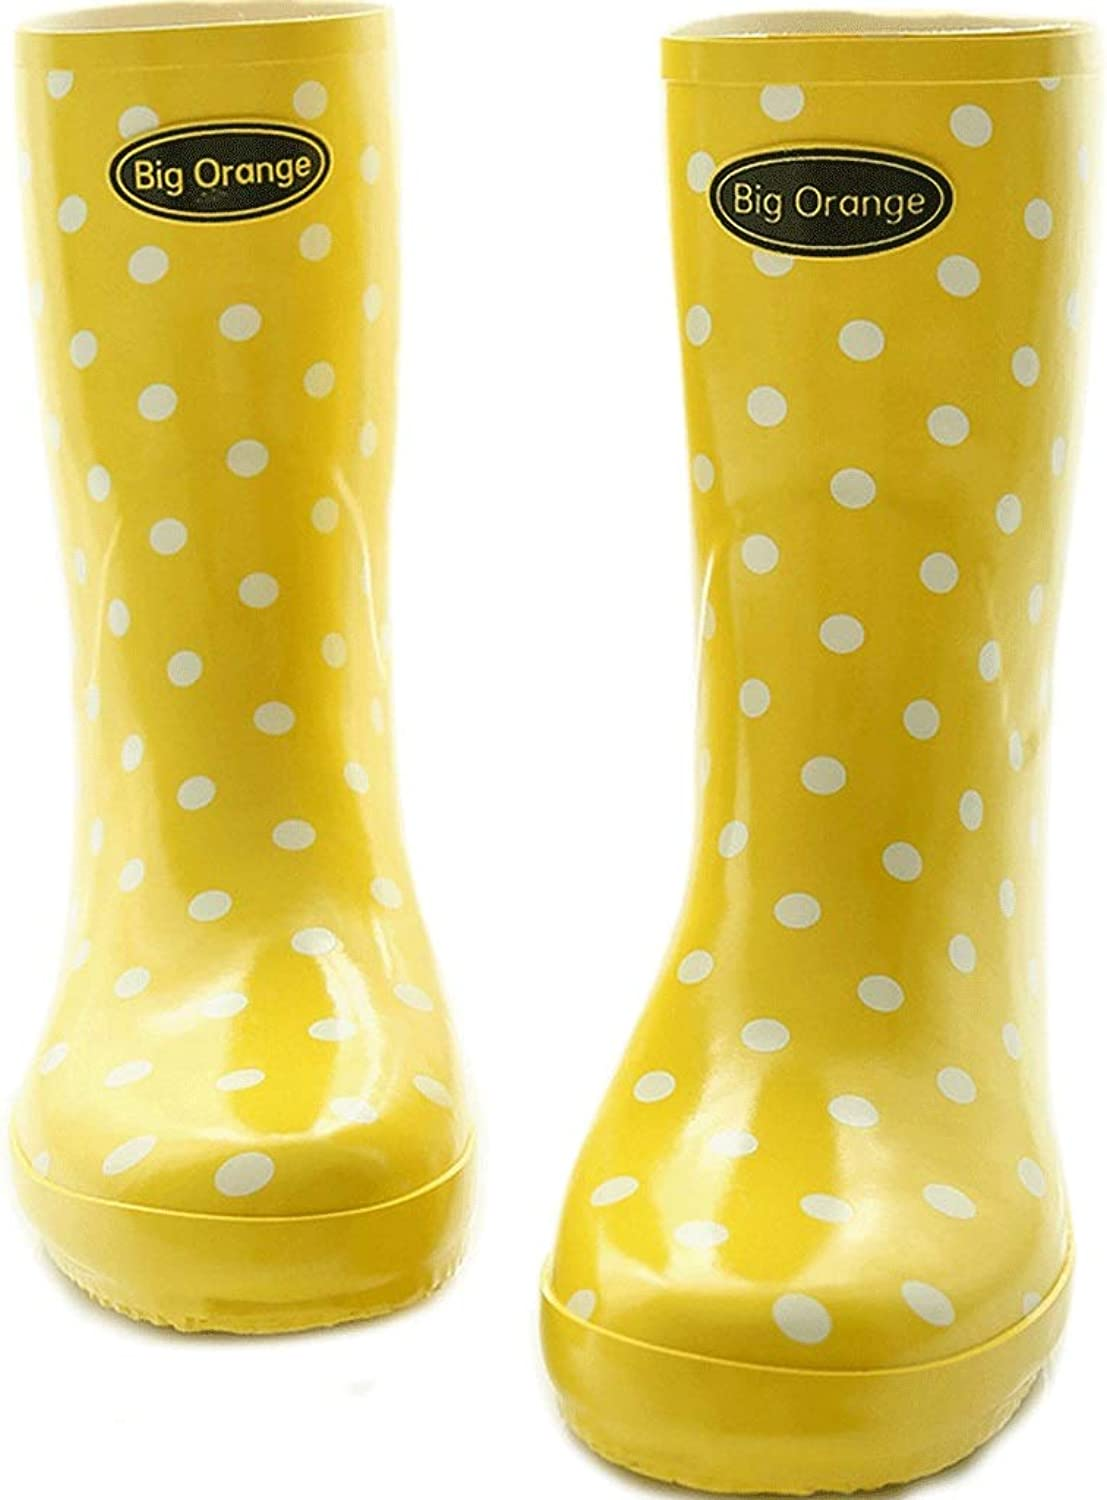 DUANGUOYAN Rain boots- Ms. Garden Rain shoes Female Adult In The Boots Rubber Boots Rain Boots Water shoes (color   Yellow, Size   39)